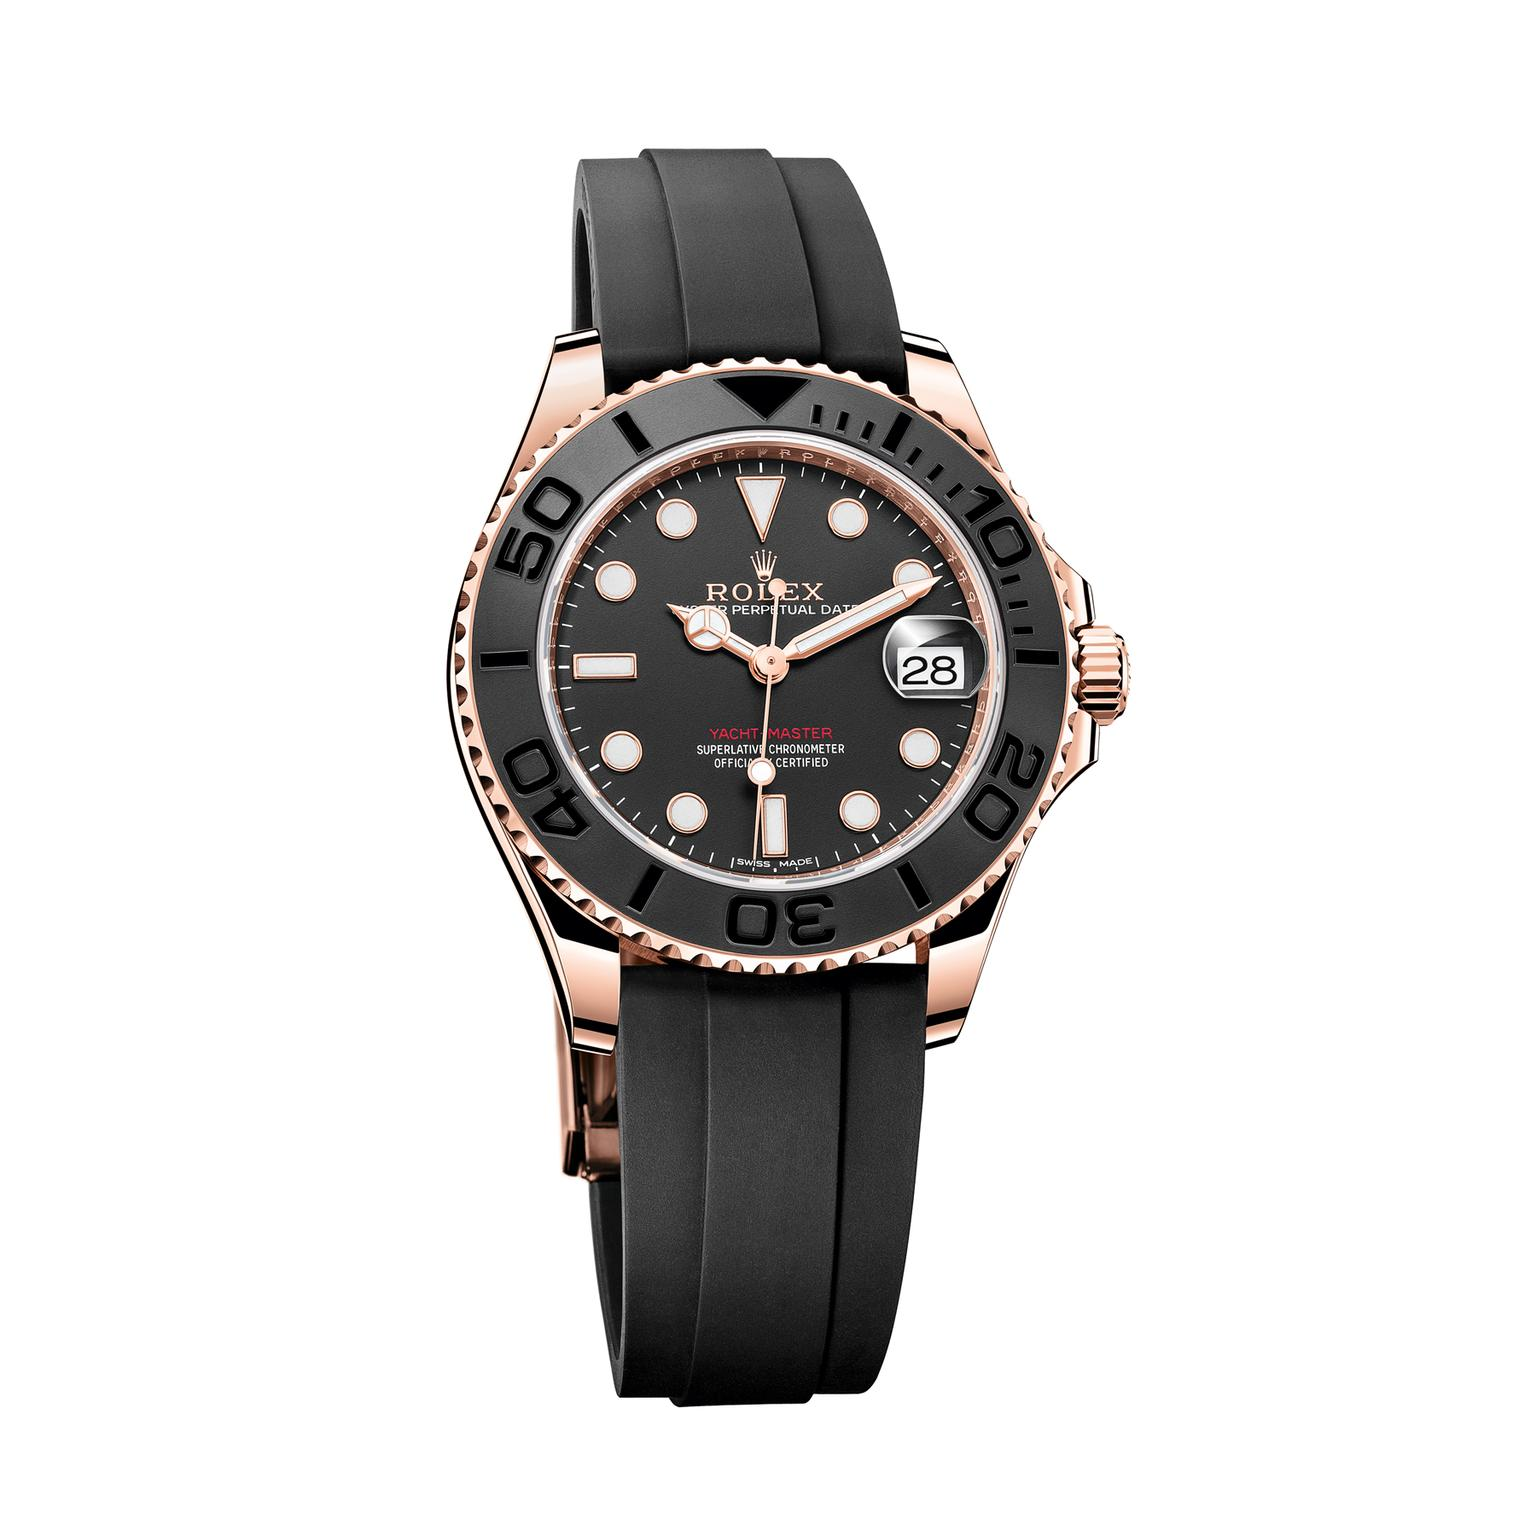 Rolex Yacht-Master 37mm watch in Everose gold